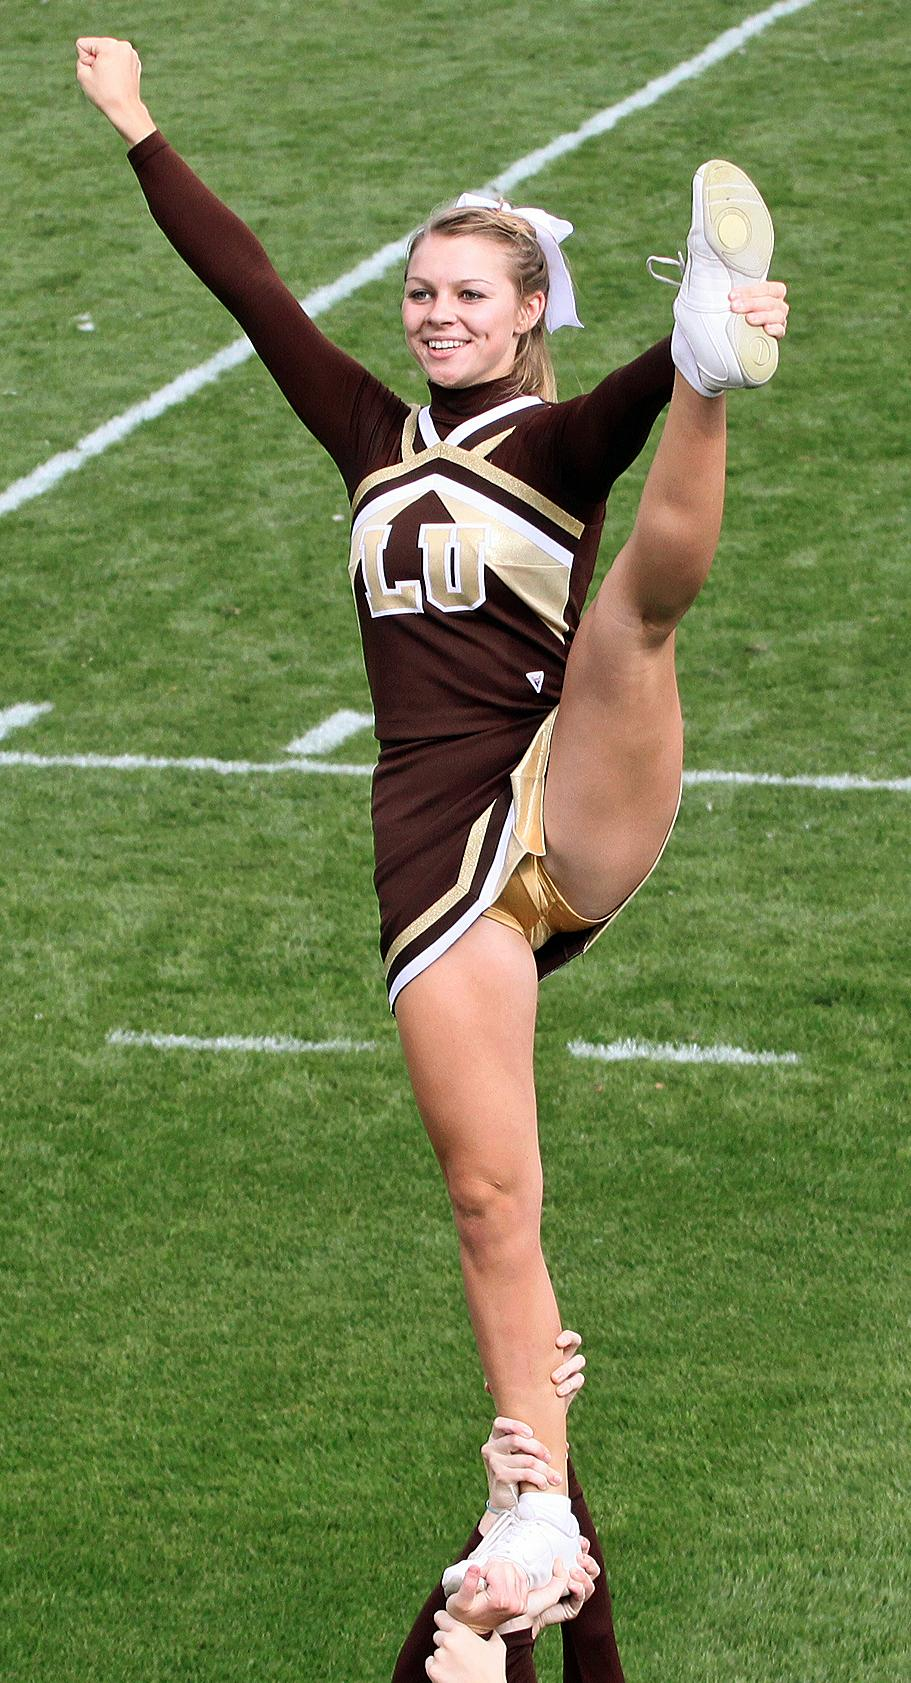 Cheerleader upskirt panty pics think, that